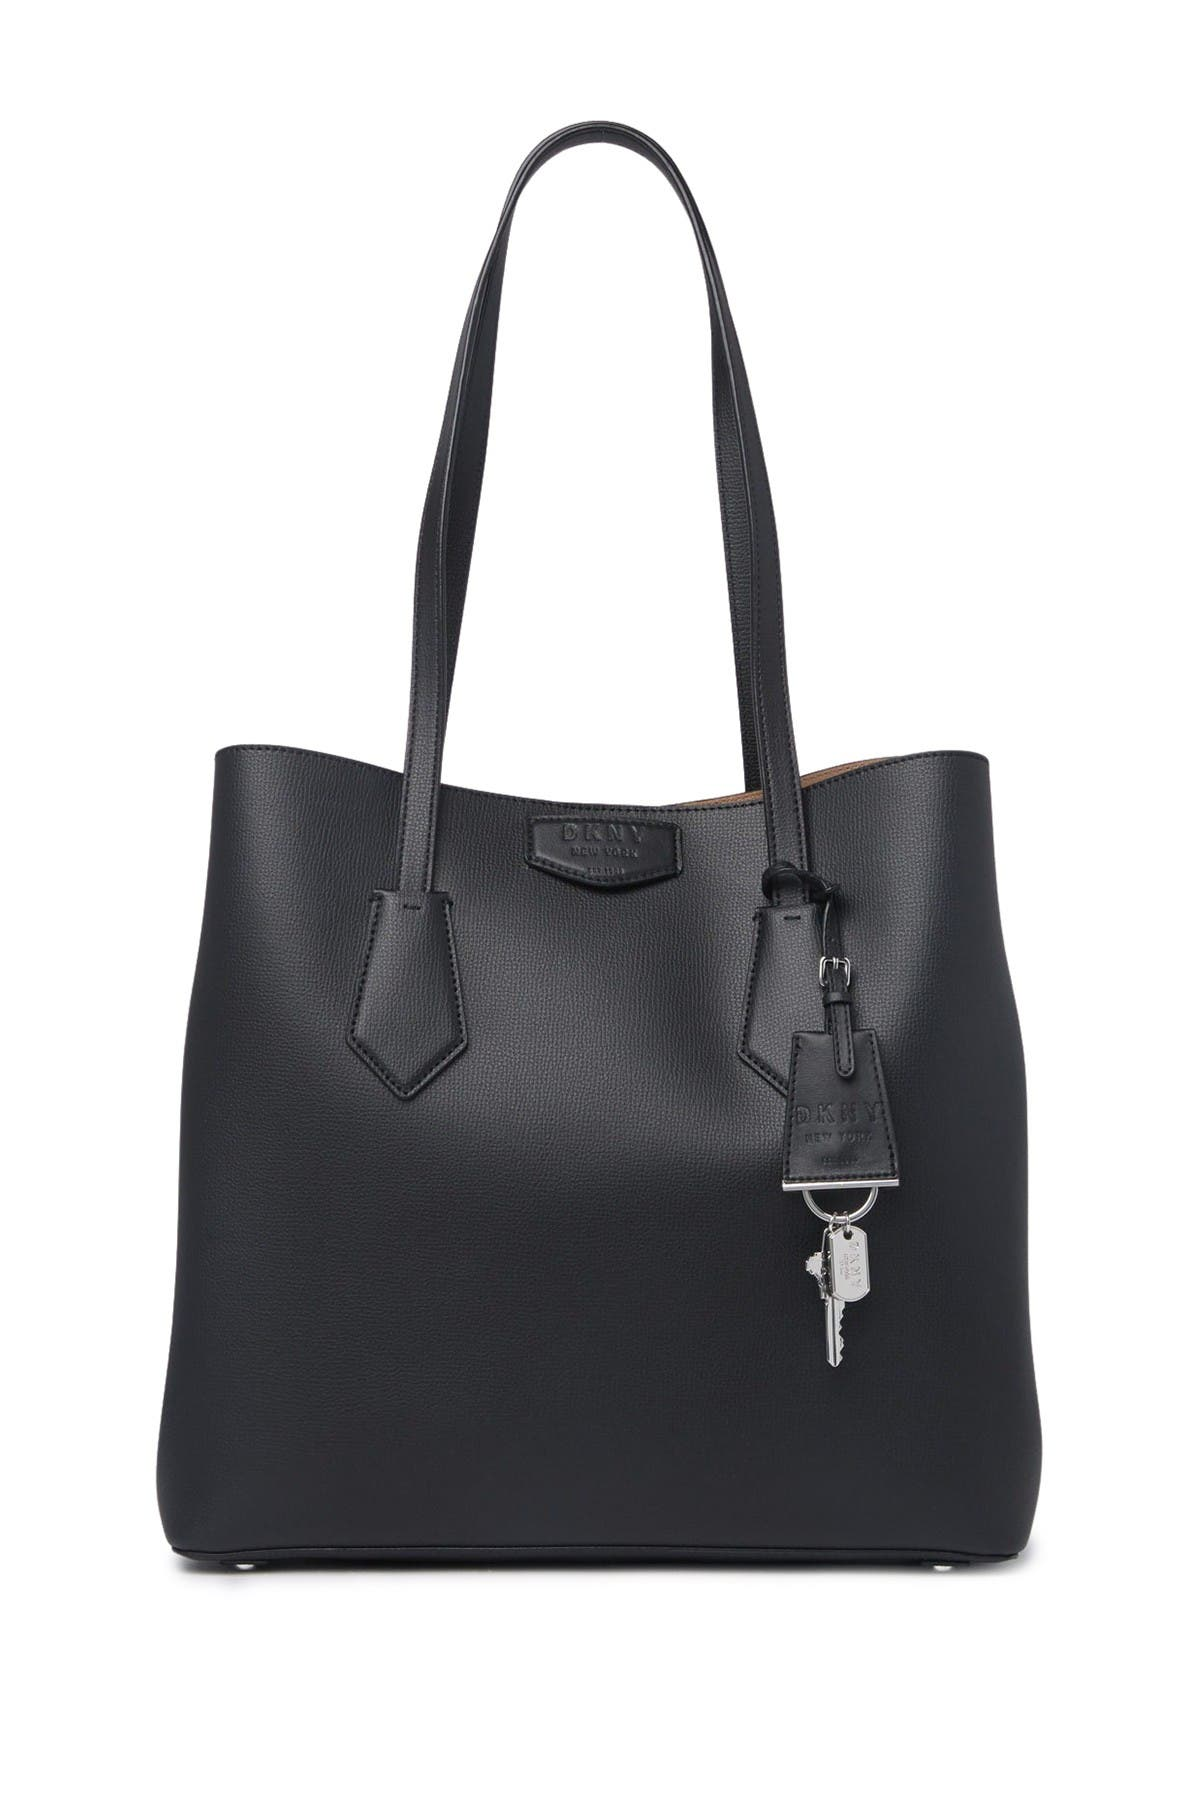 Image of DKNY Large North South Tote